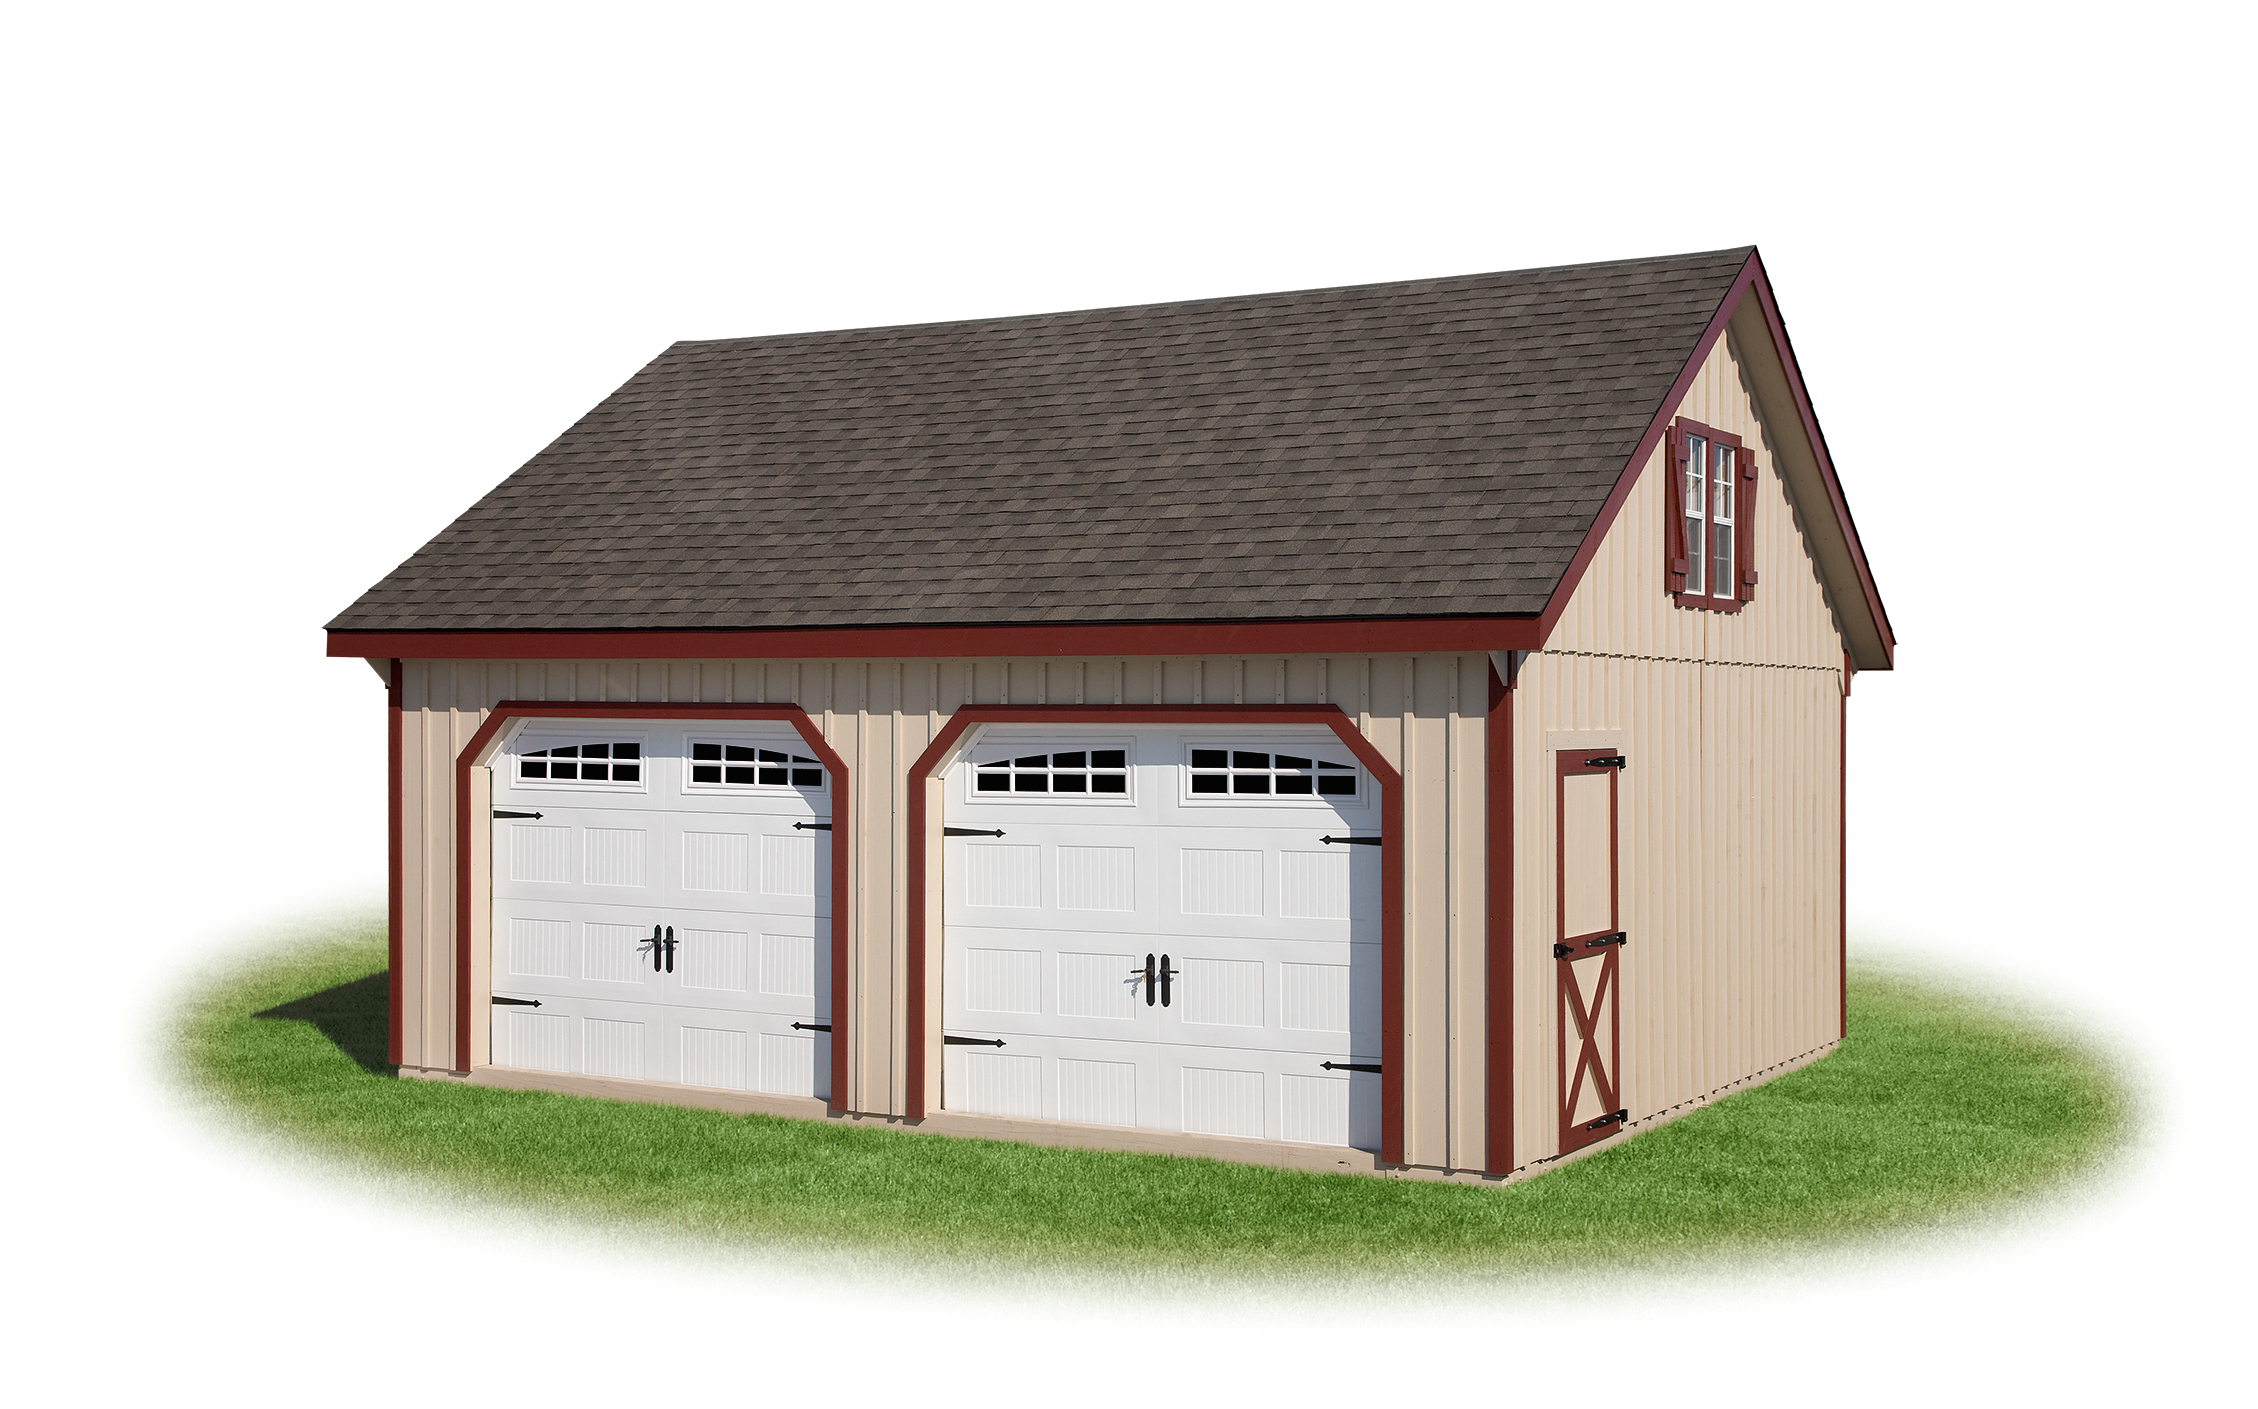 20 X 24 Double Wide Two Story Garage Amish Sheds From